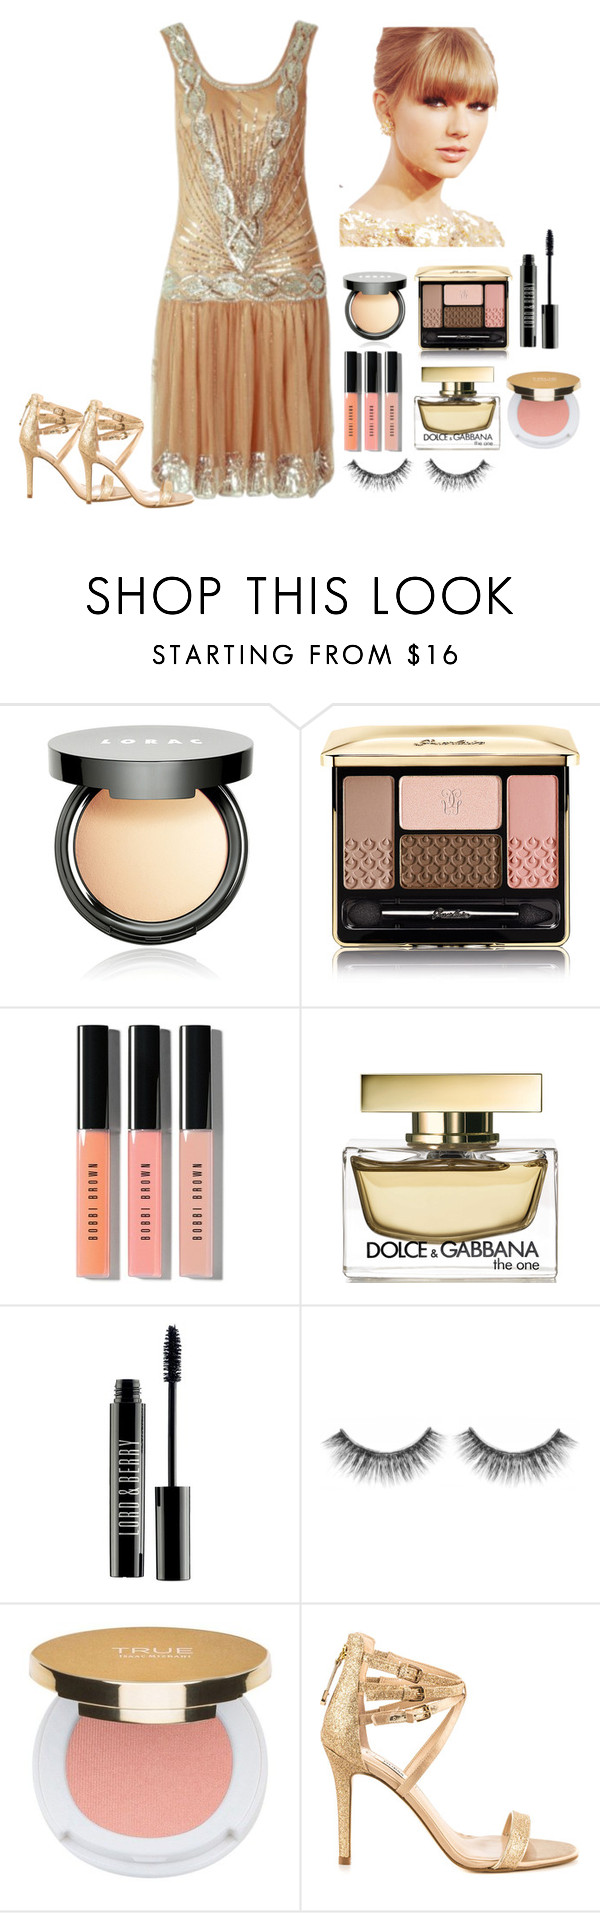 """Christmas Party #1"" by sunshine24-7-1 ❤ liked on Polyvore featuring LORAC, Guerlain, Bobbi Brown Cosmetics, Lord & Berry, Sephora Collection, Isaac Mizrahi and GUESS"